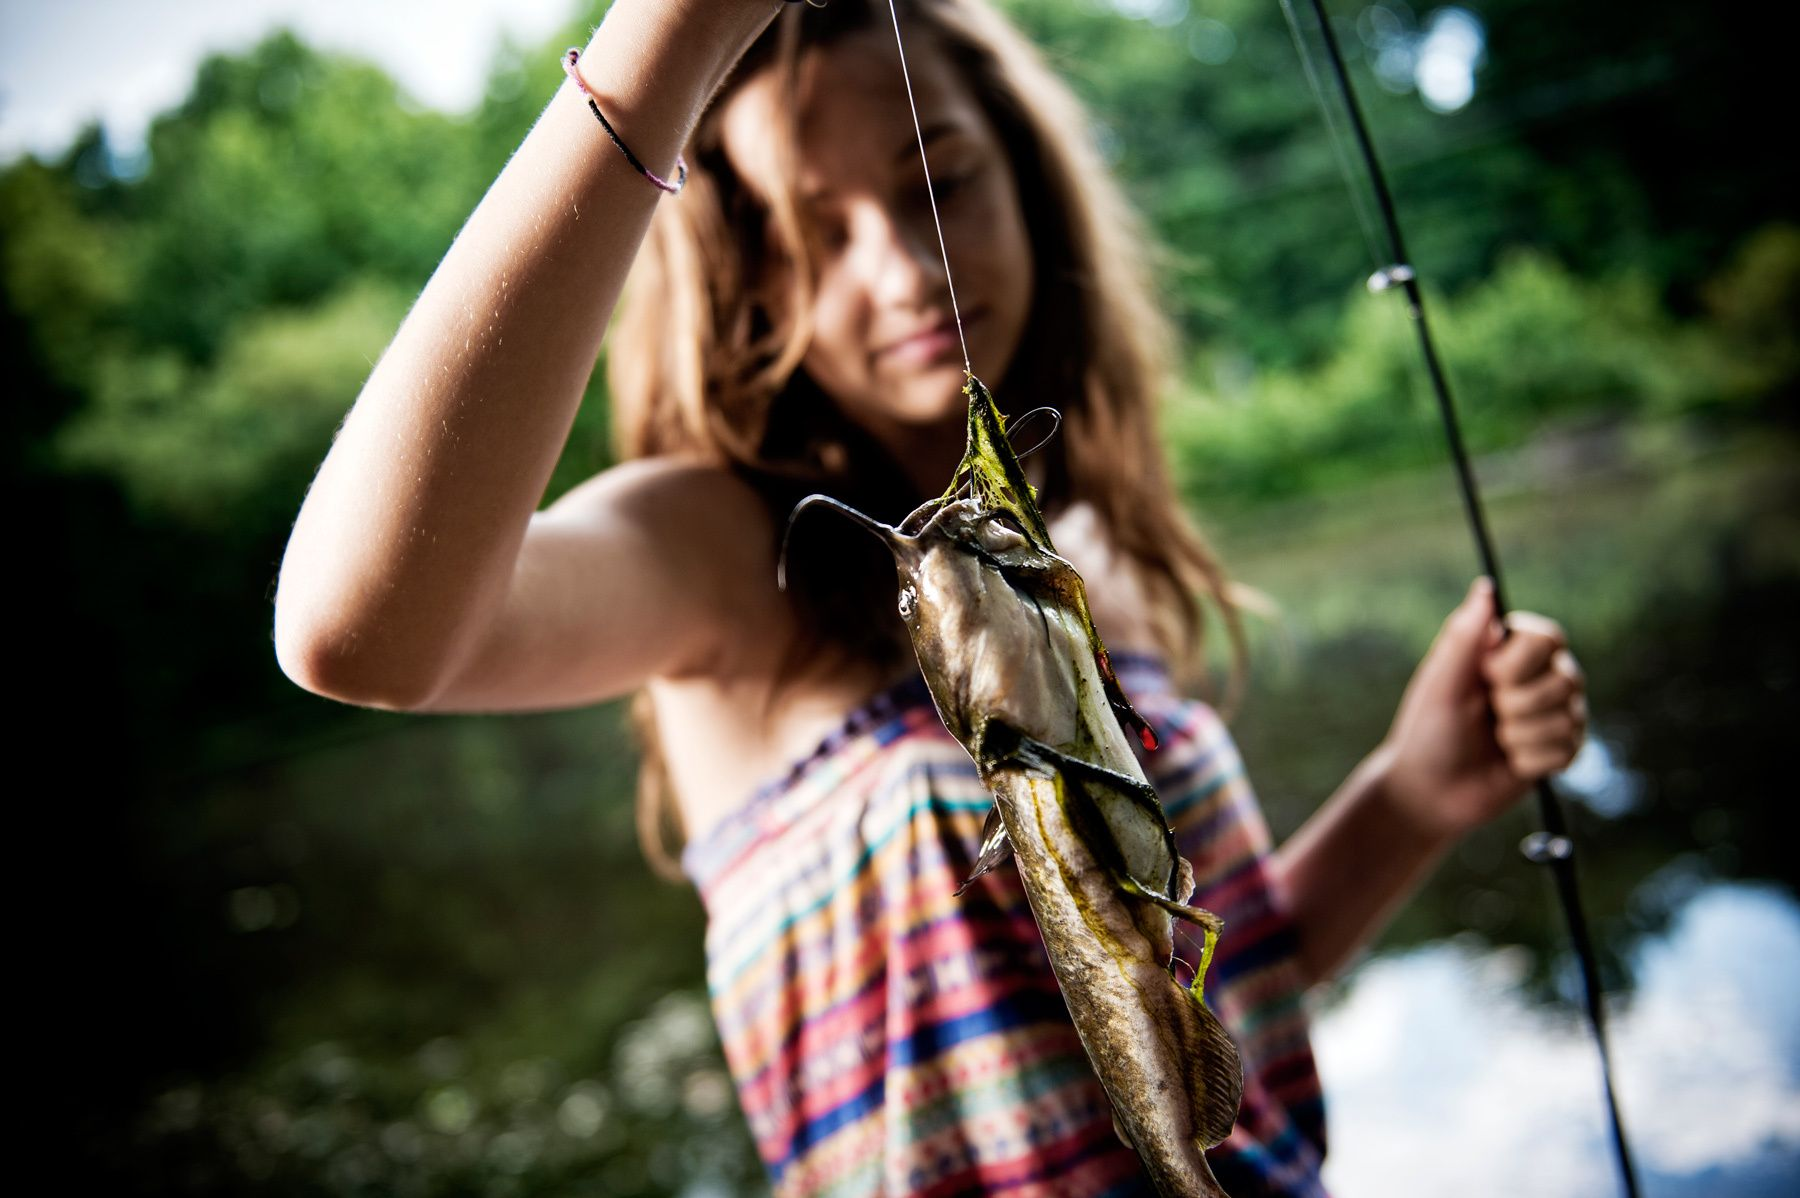 1hunting_and_gathering_young_woman_catches_catfish_dsc1609